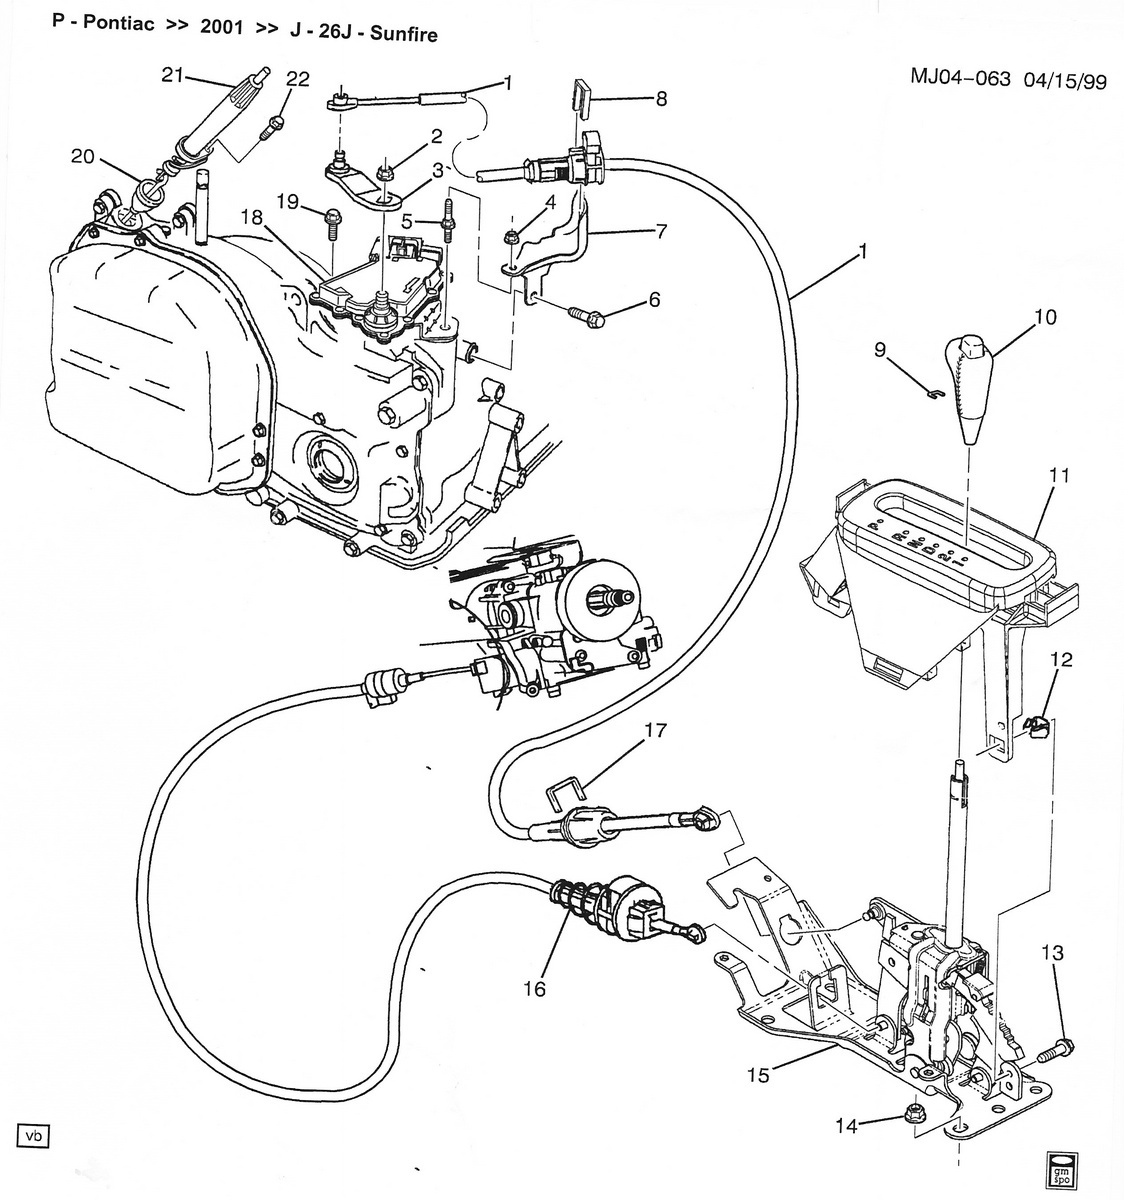 Door Lock Wiring Diagram For Honda Civic